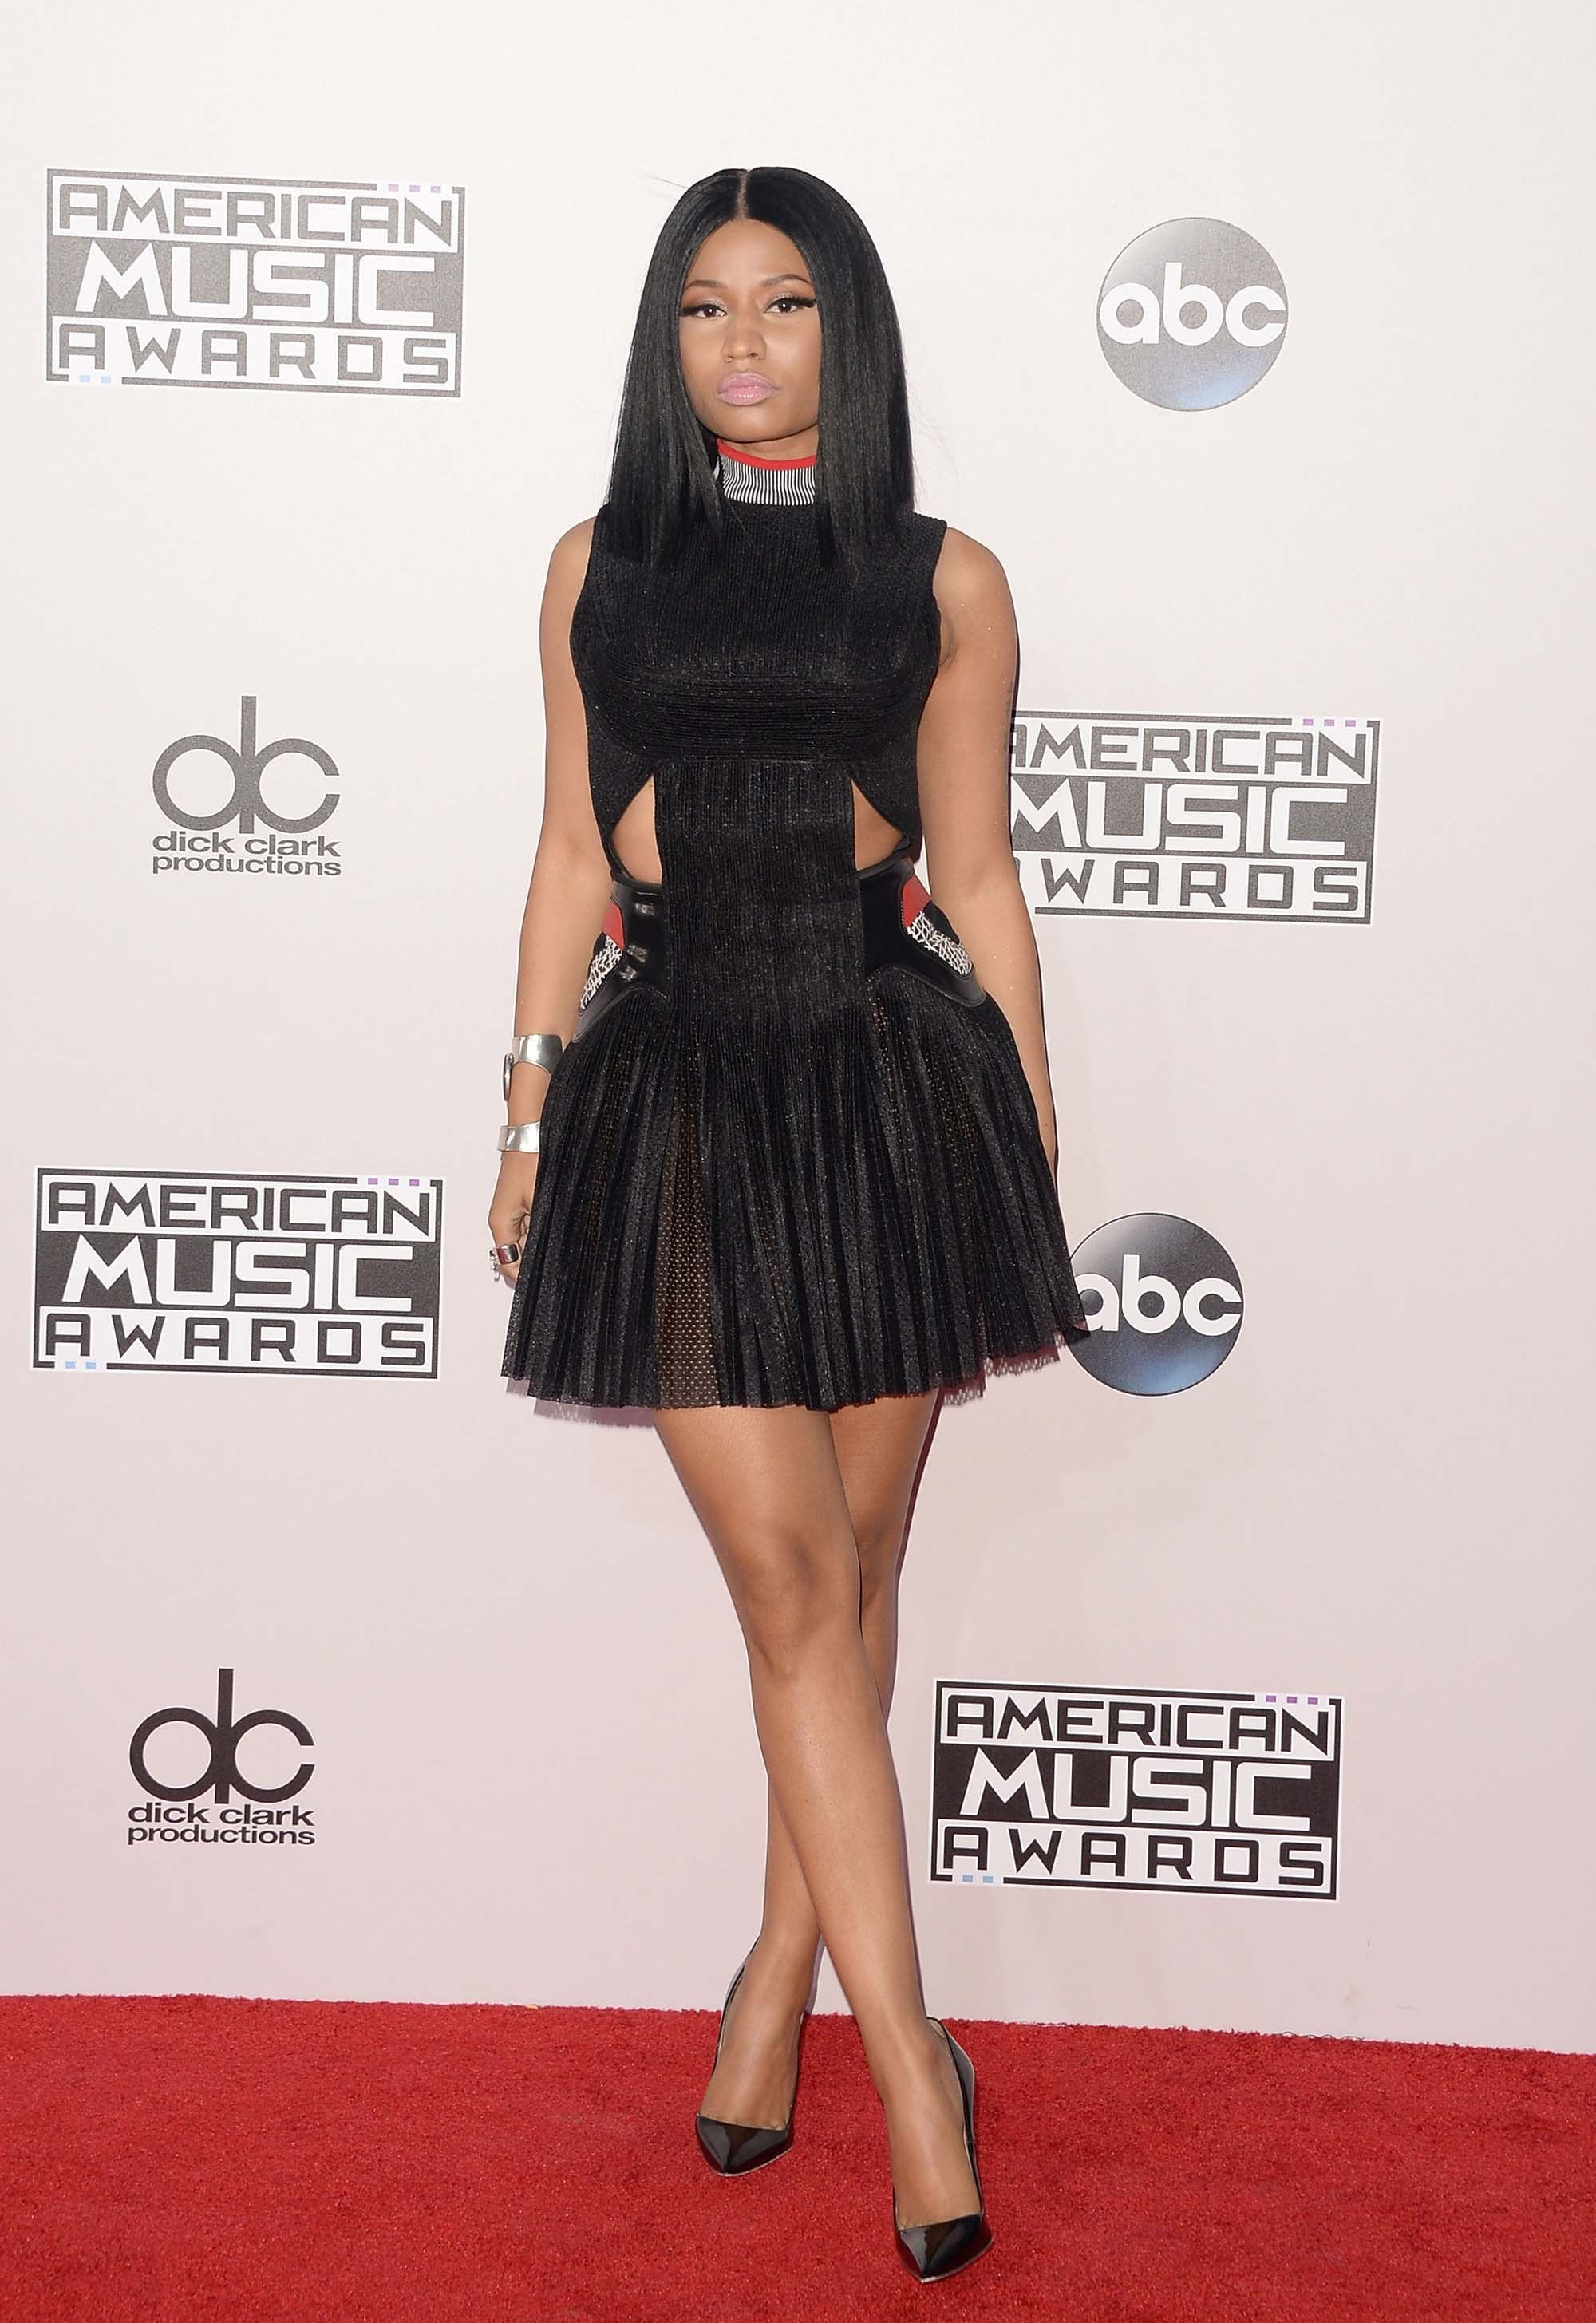 95105a26f88add Alexander Wang's 17 Best Celebrity Fashion Moments: Rihanna, Beyoncé ...